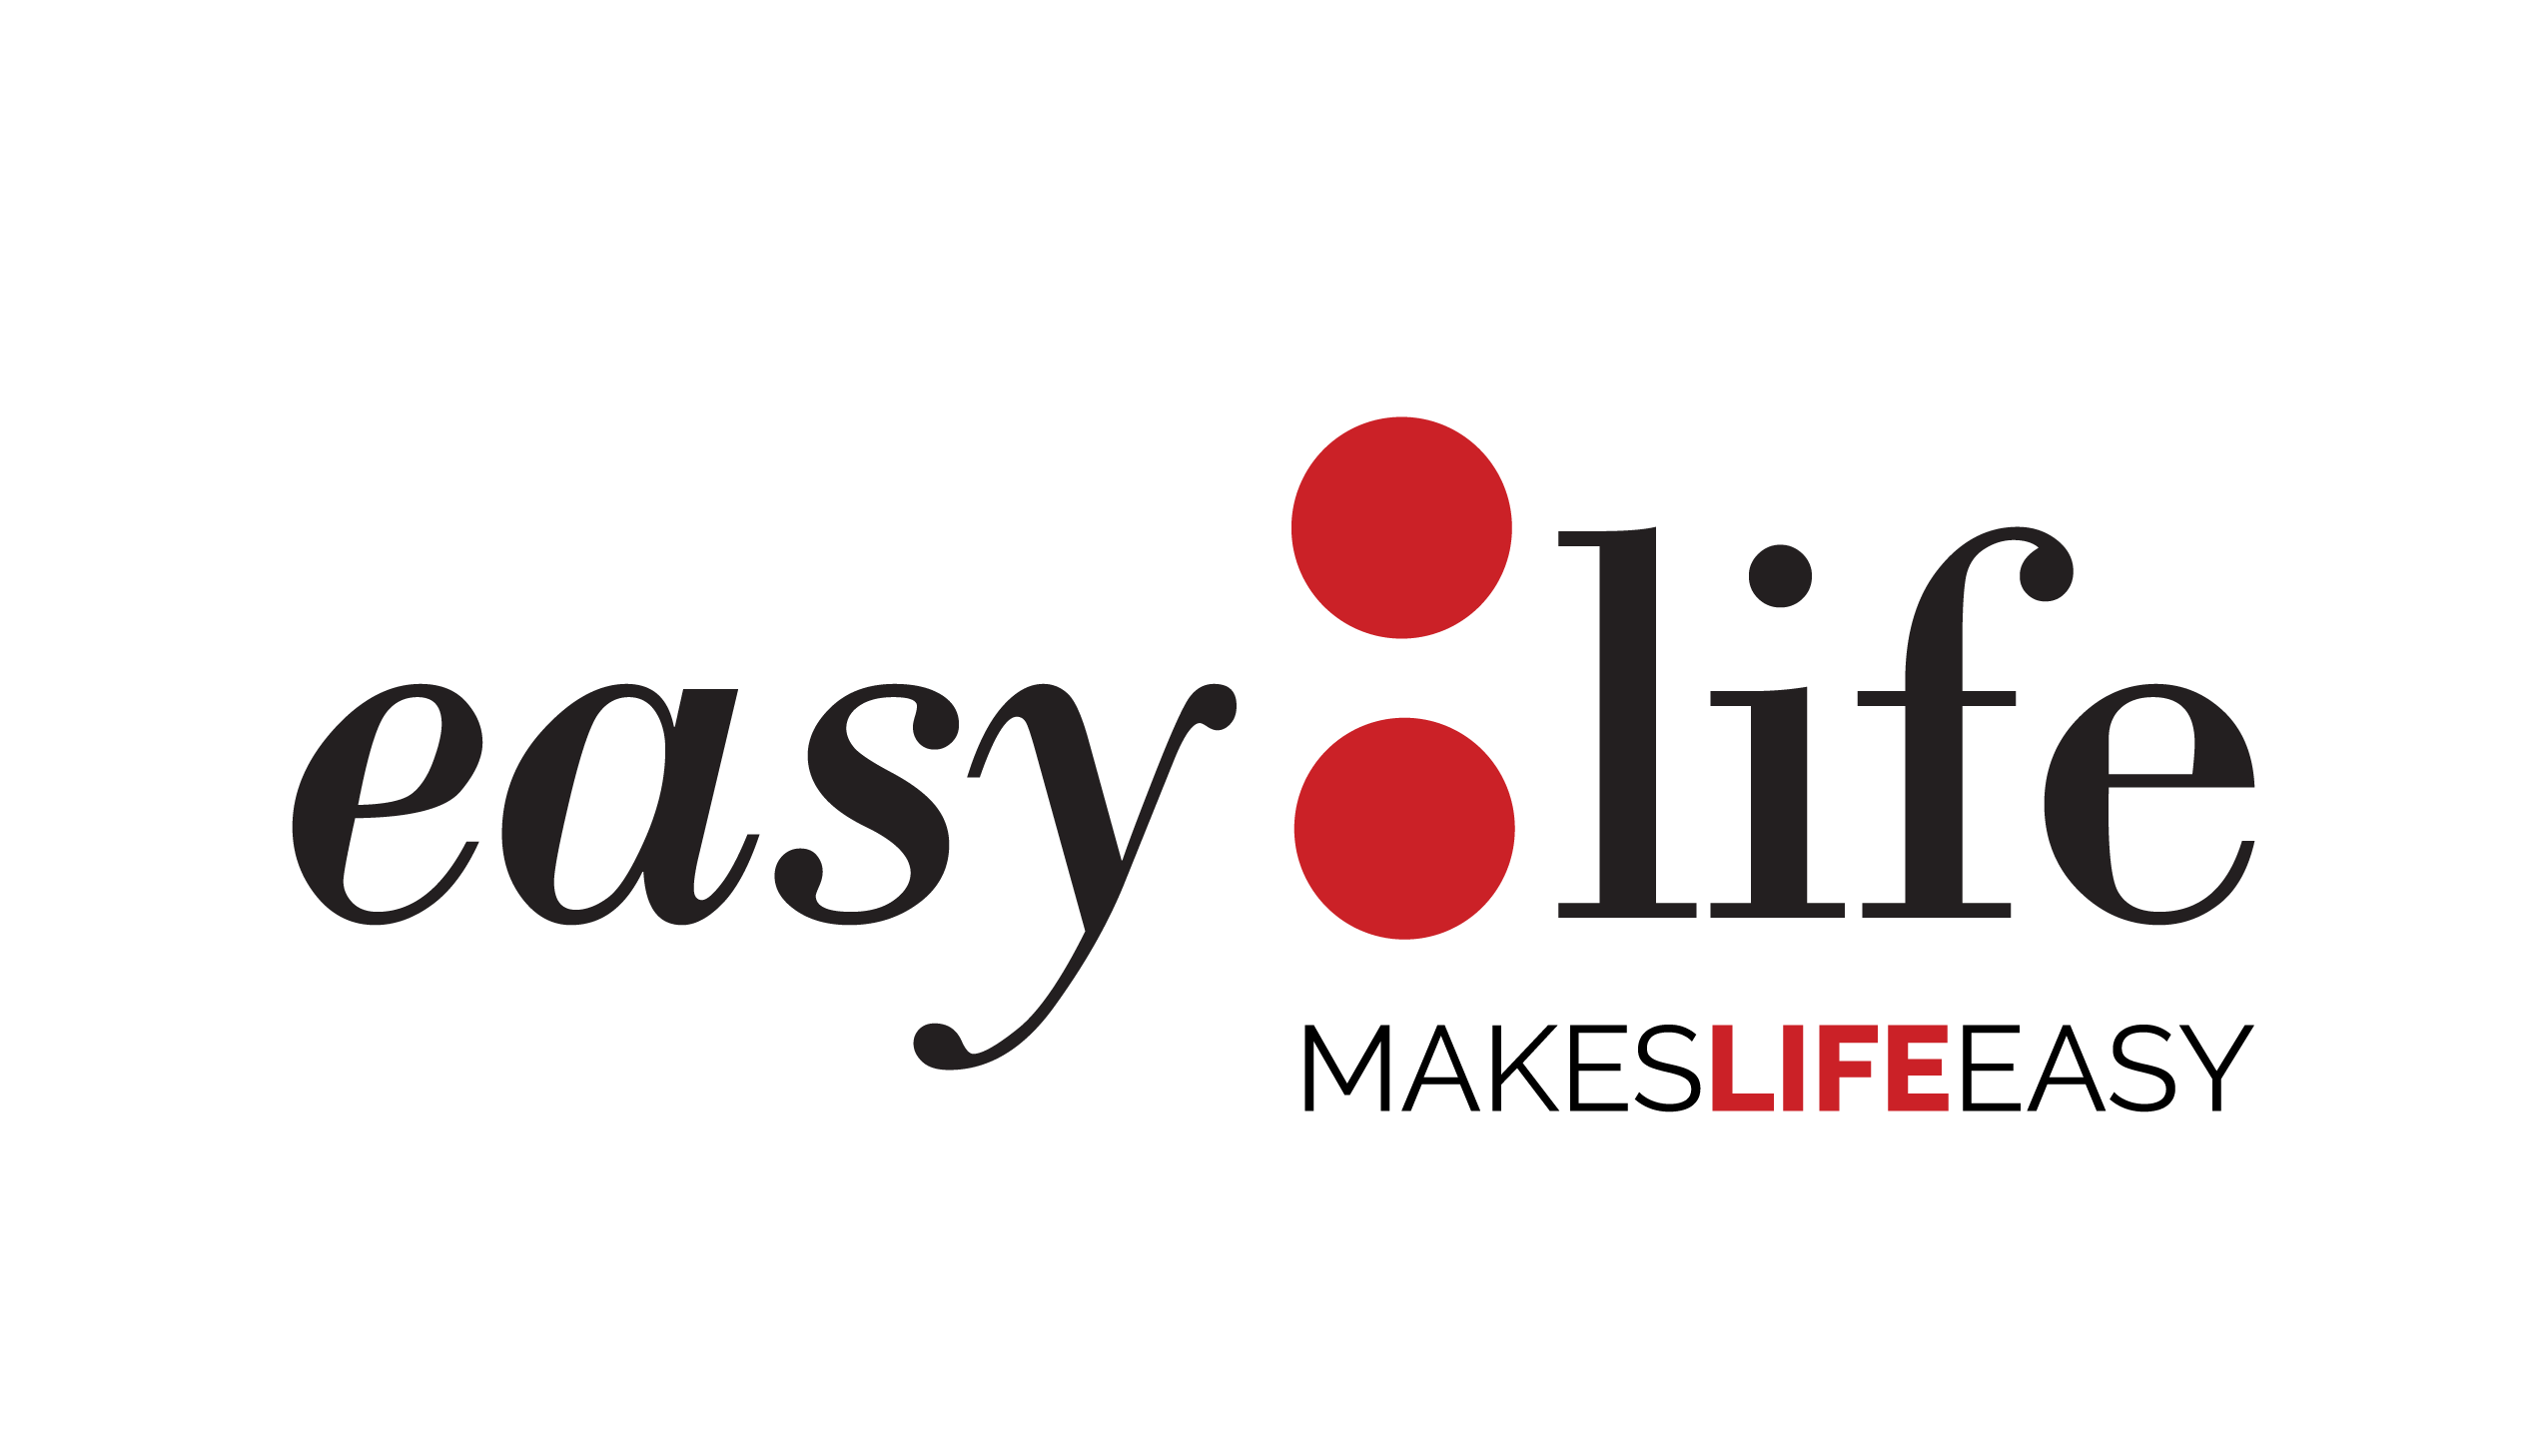 Easylife Store